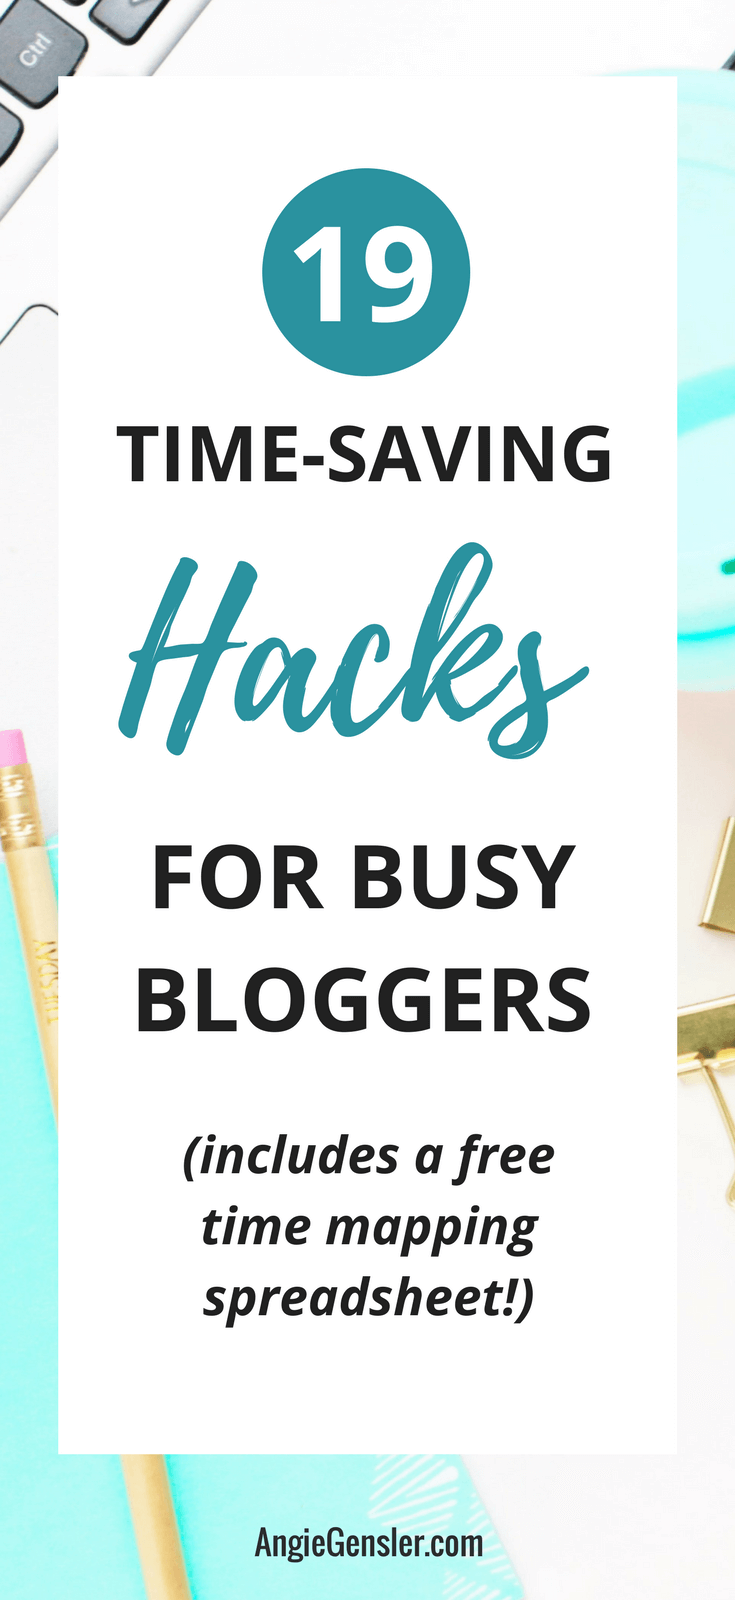 Blogger Hacks - 19 Time-Saving Tips and Tricks for Busy Bloggers 1